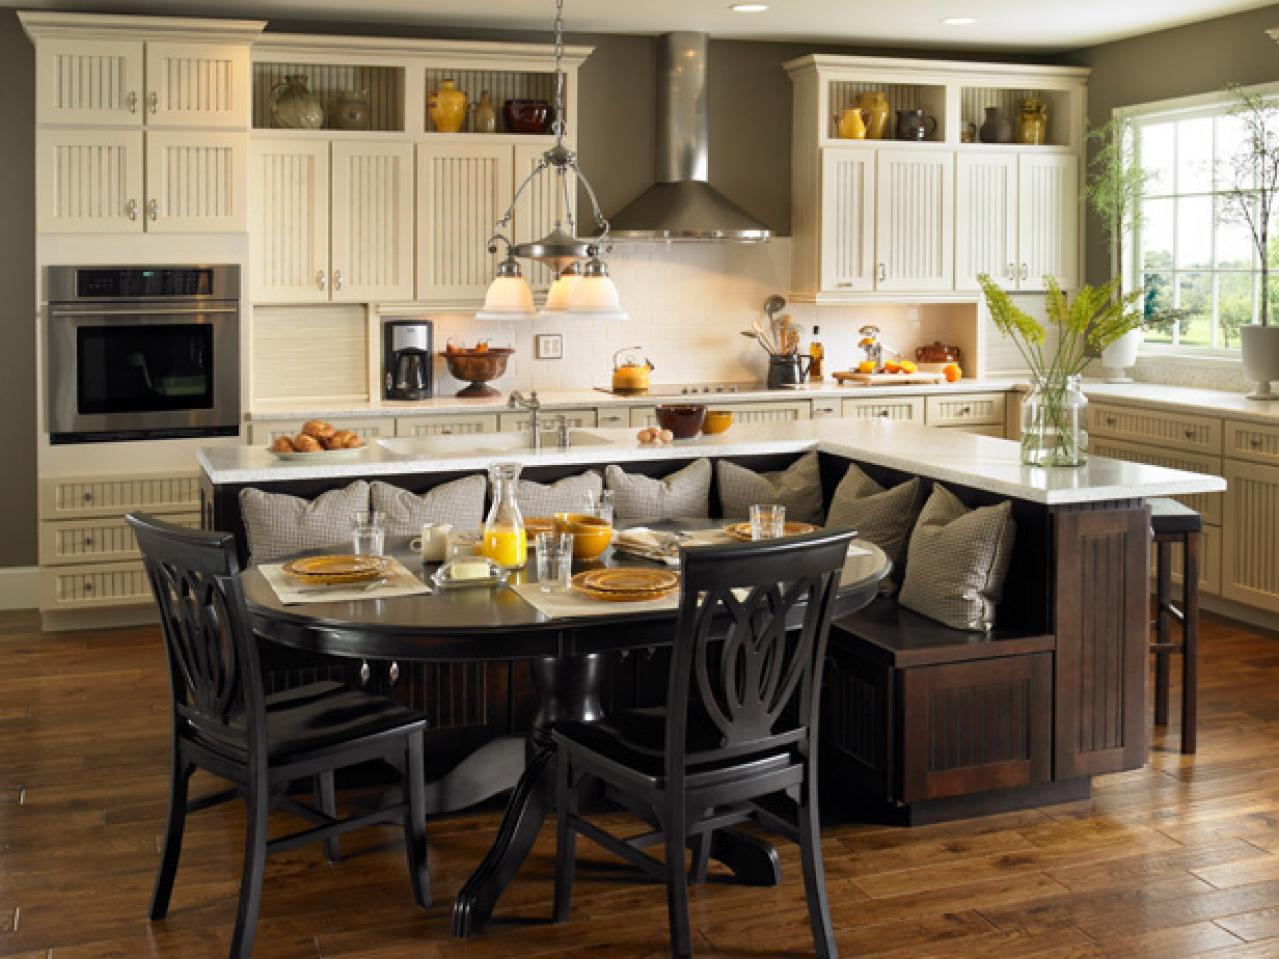 kitchen island table ideas and options - Kitchen Island Table Ideas